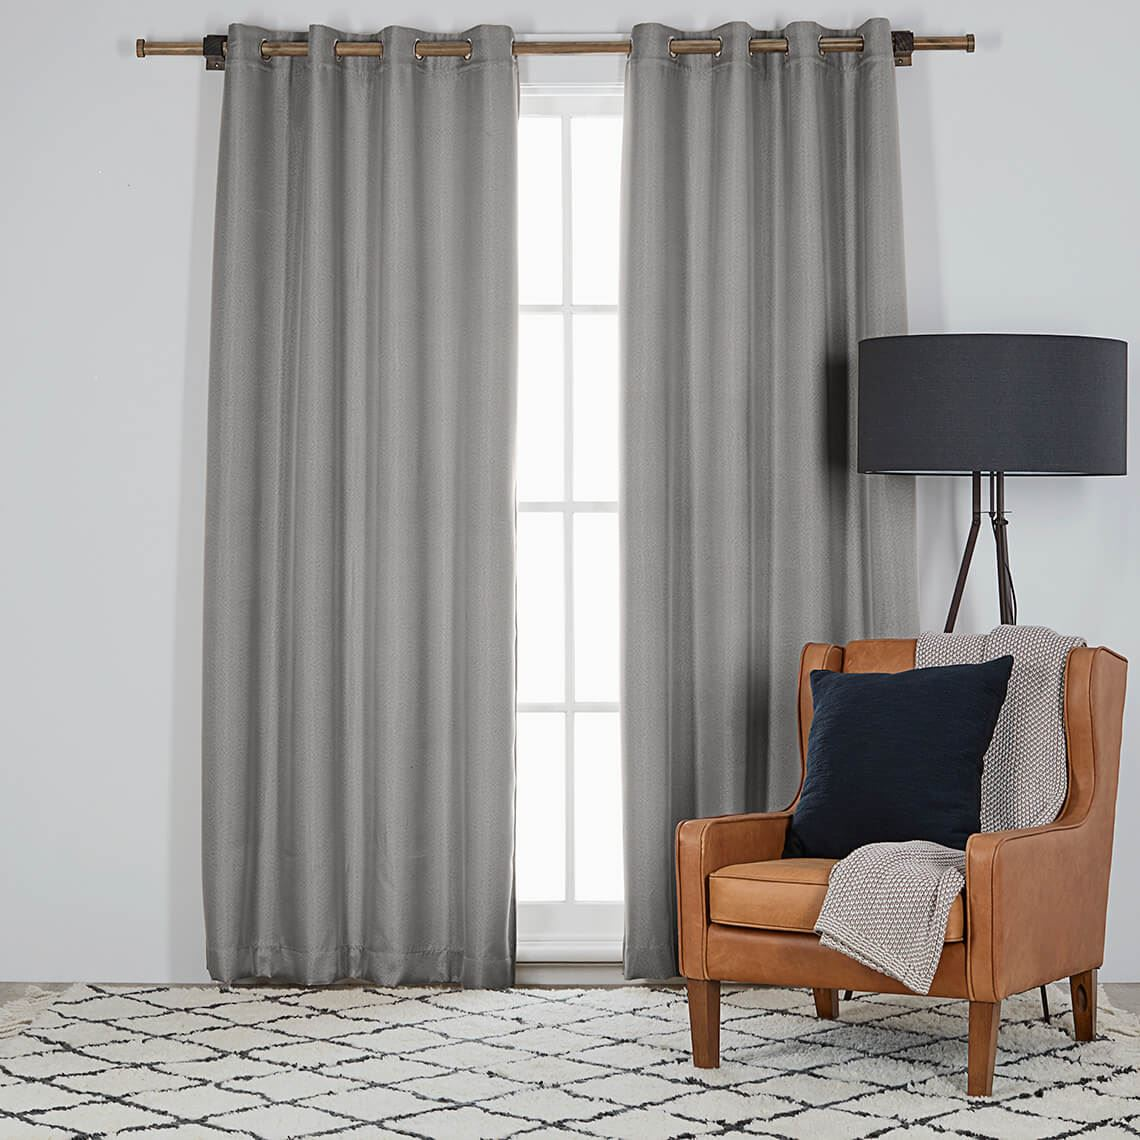 Harrison Room Darkening Eyelet Curtain Size W 135cm x D 0cm x H 230cm in Silver 100% Polyester Freedom by Freedom, a Curtains for sale on Style Sourcebook